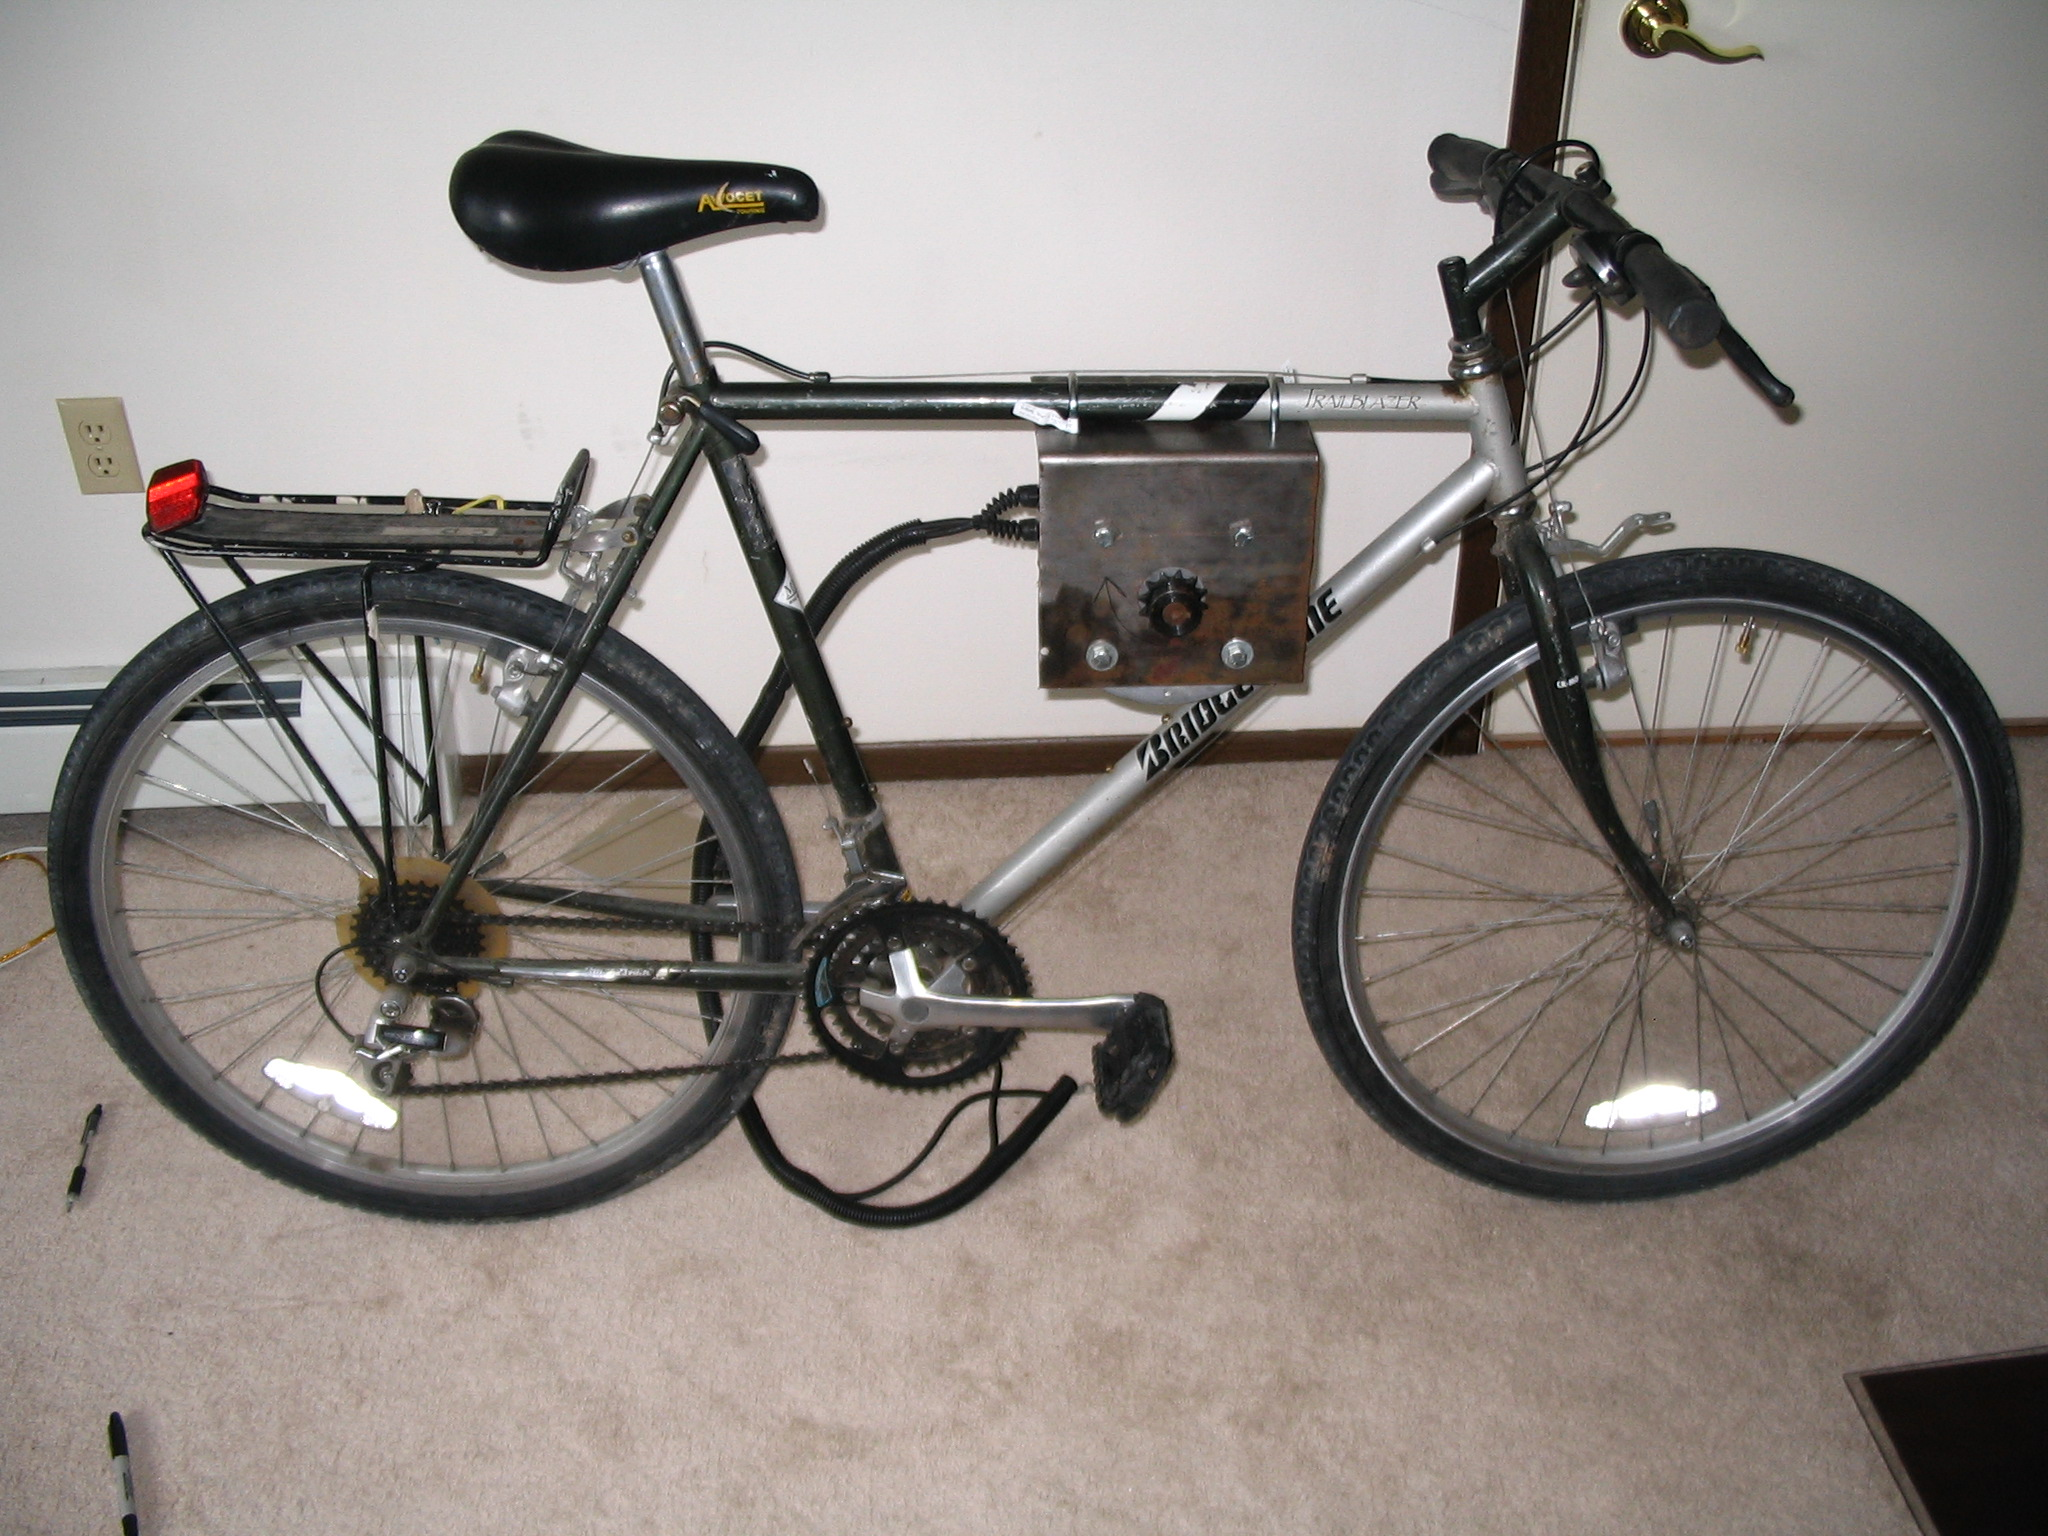 Electric Bike - now with chain-snapping power!